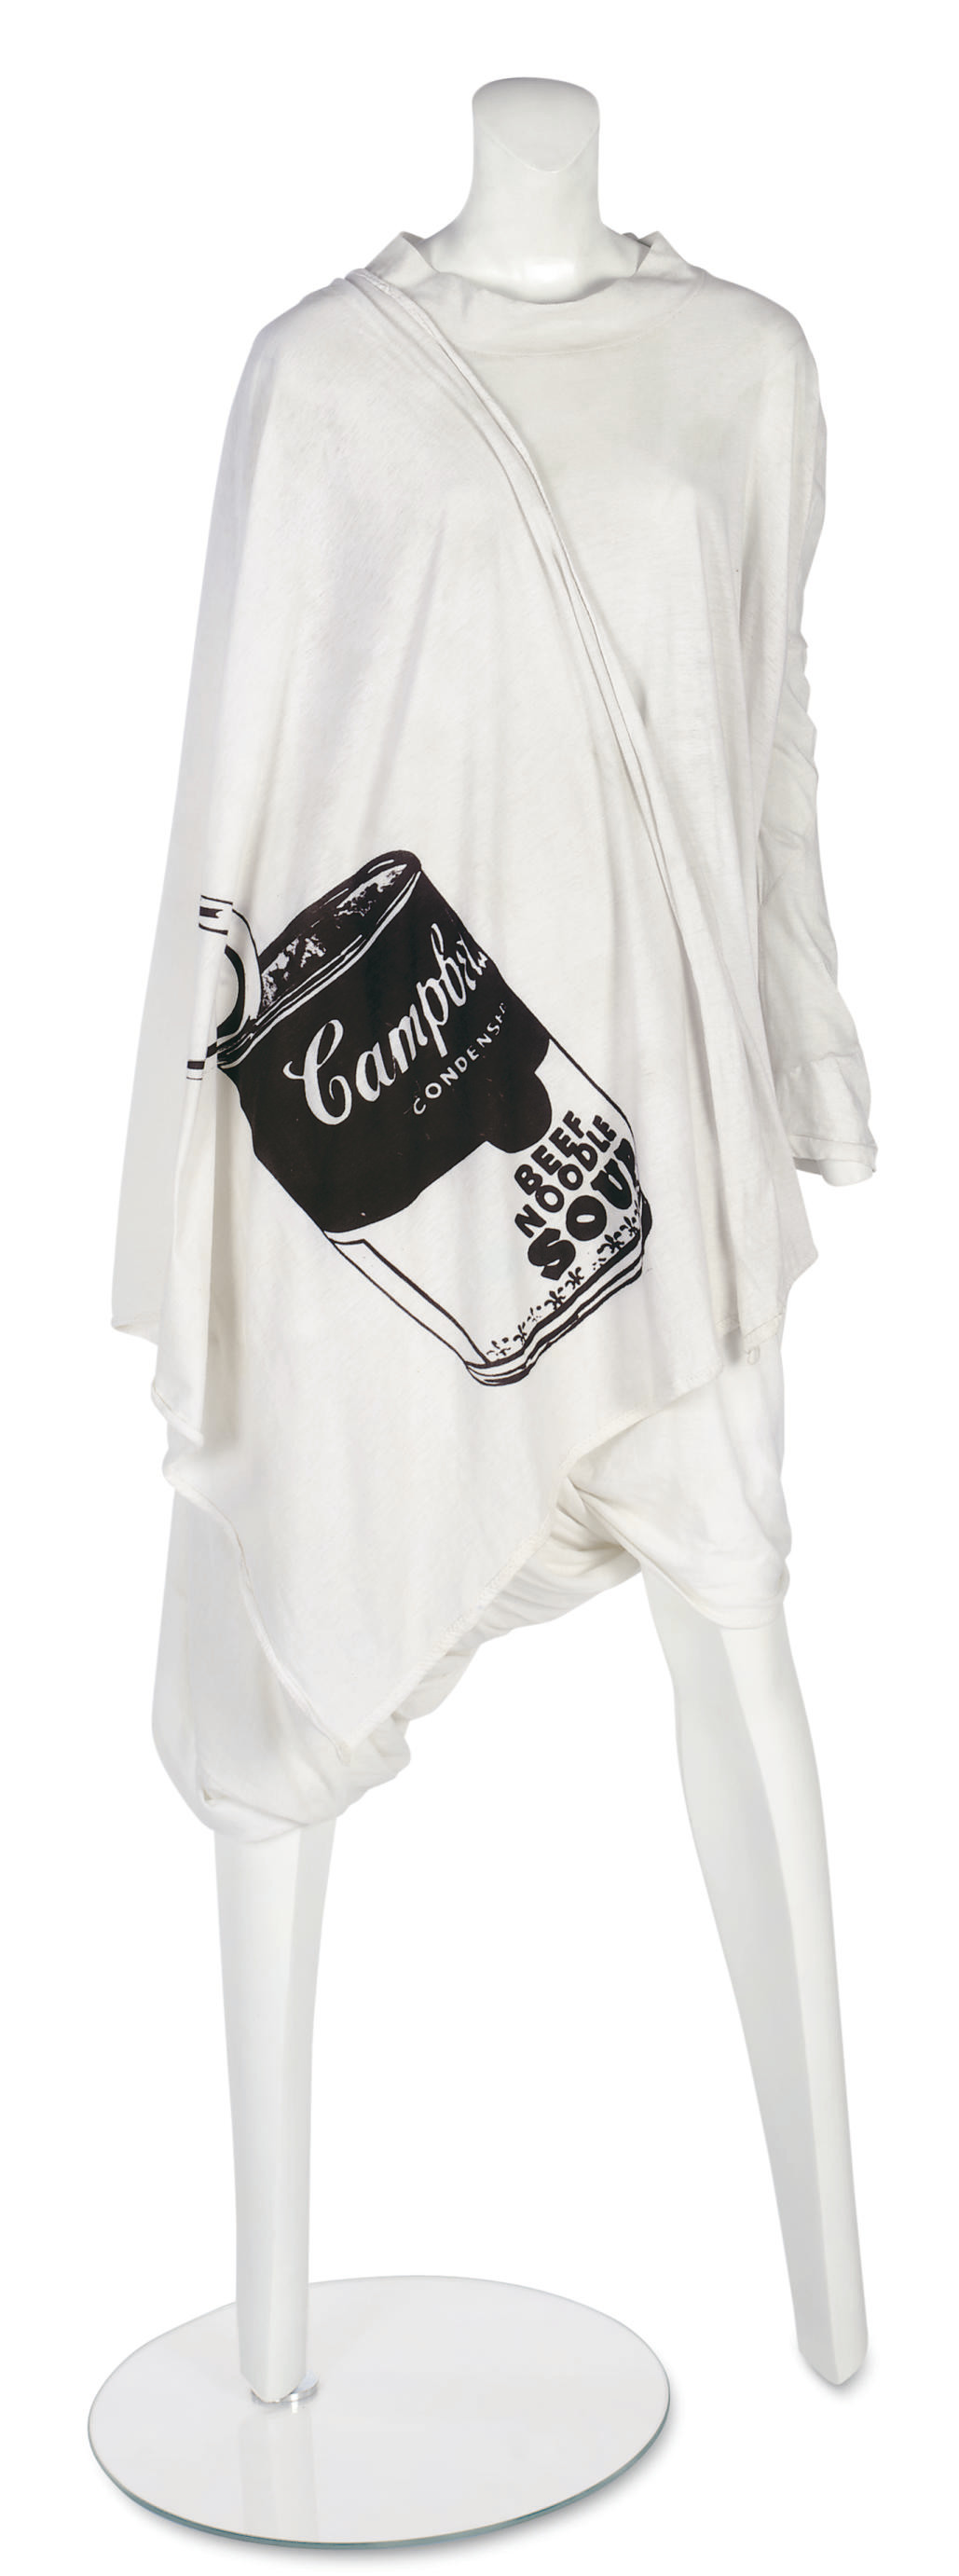 WORLD'S END (F.1981)     A 'NOSTALGIA OF MUD' (BUFFALO) COLLECTION TOGA DRESS WITH 'WARHOL' PRINT